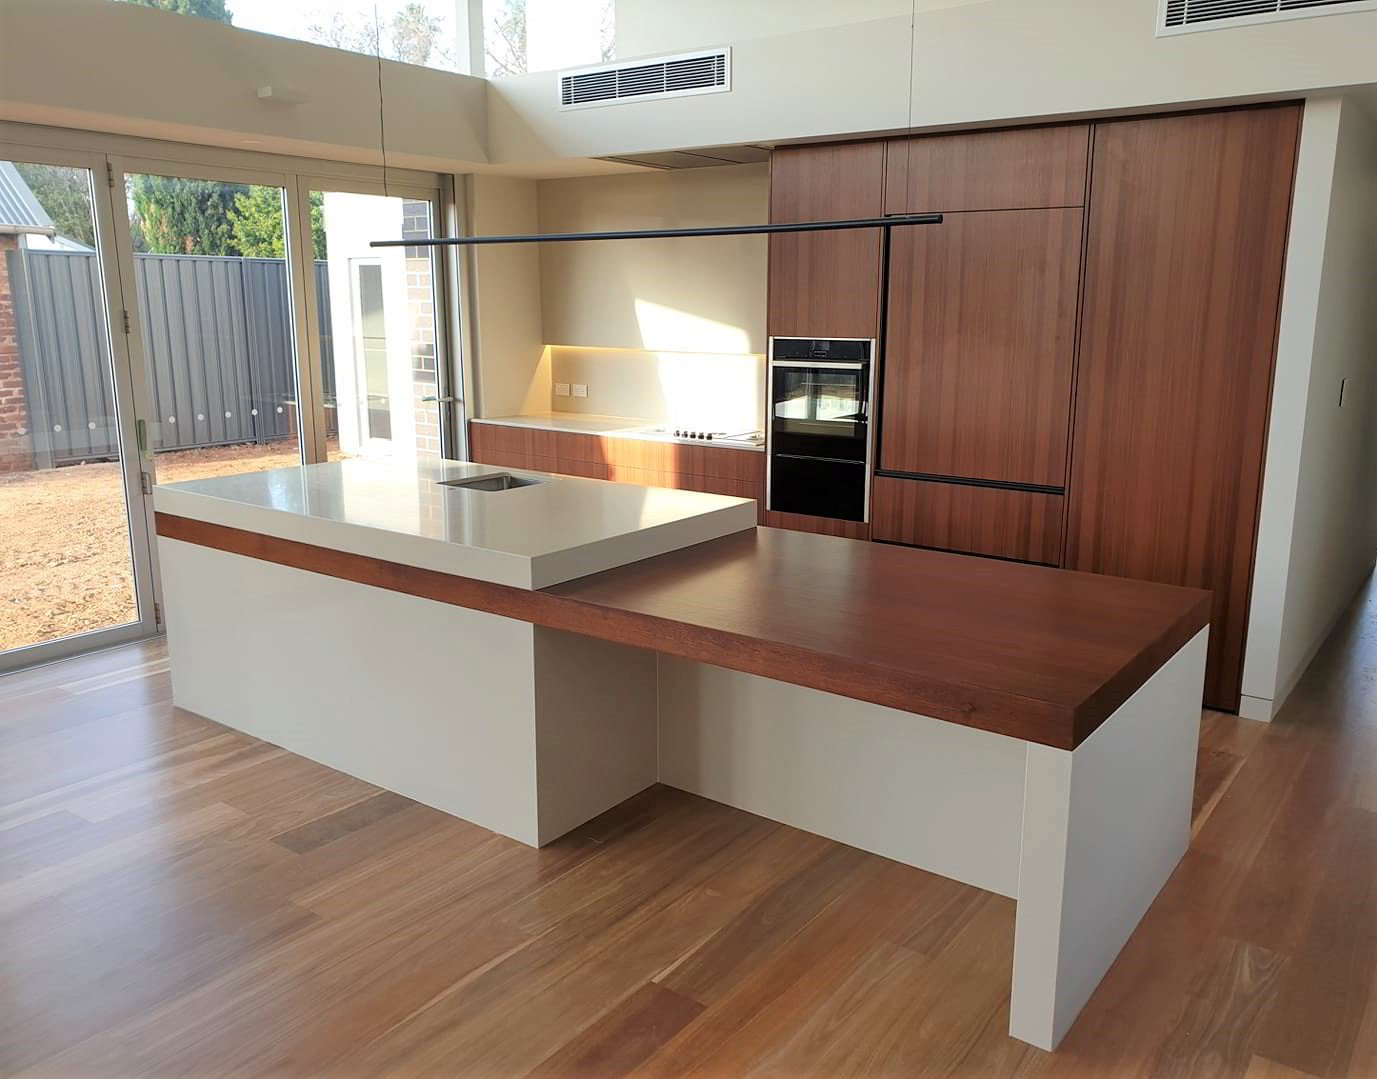 Residential Joinery by Cabinets Direct Group Adelaide cabinet making experts